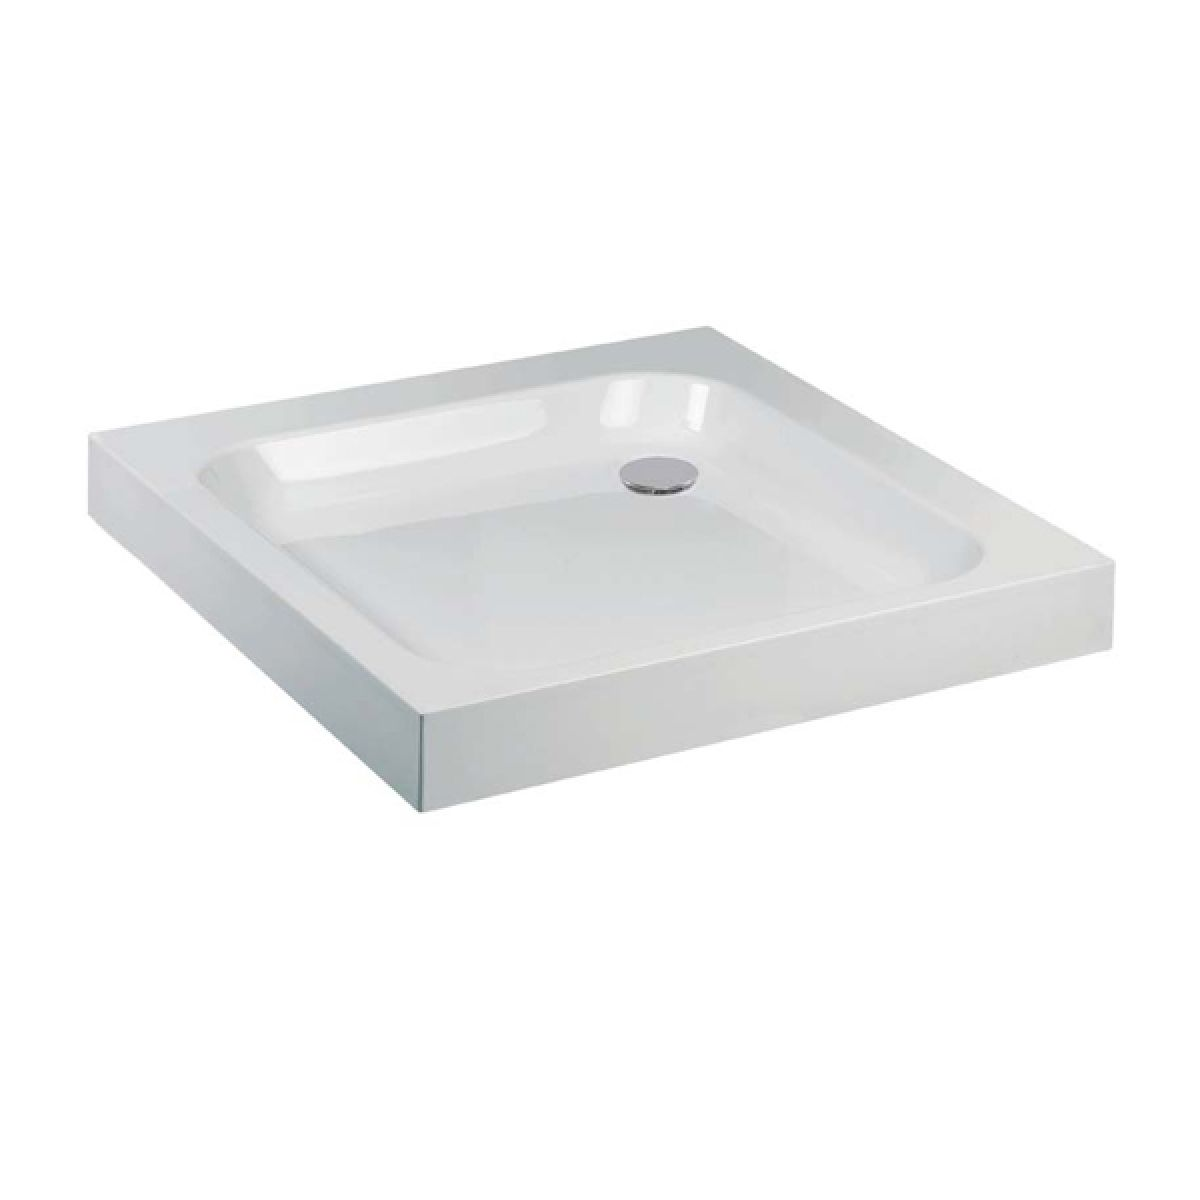 Frontline Standard Square Shower Tray 760 x 760mm